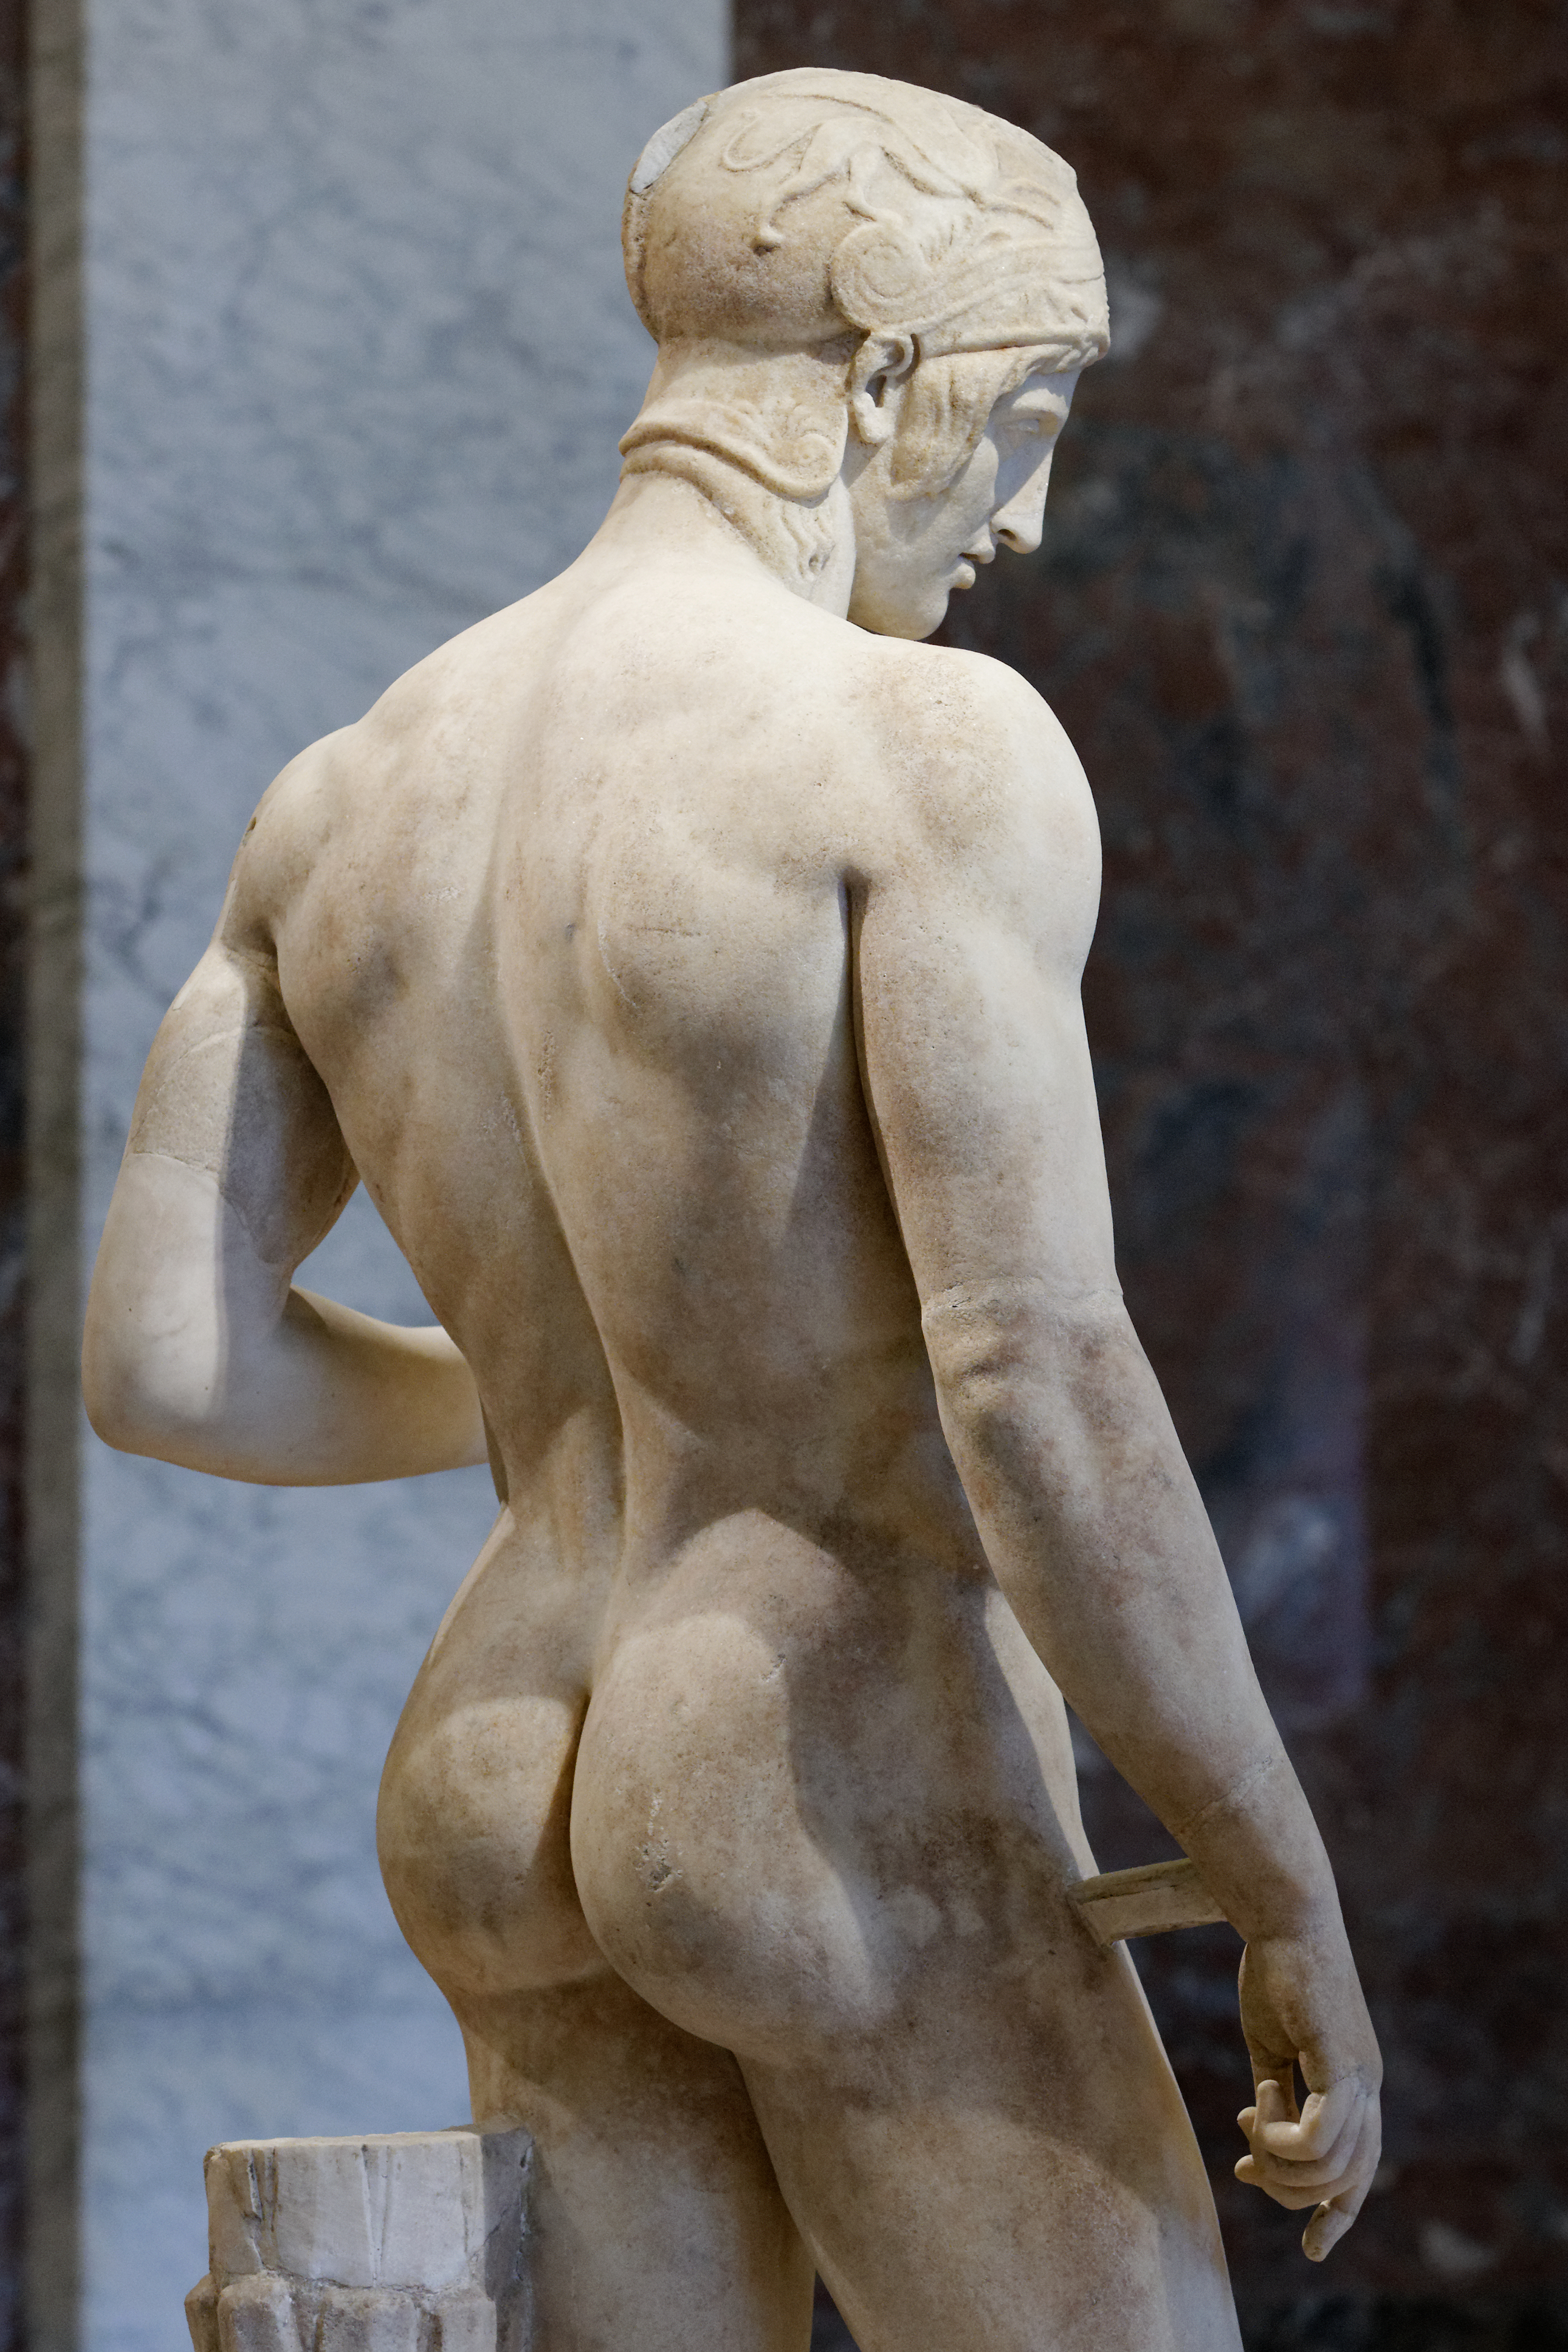 Consider, sex with statues porn that